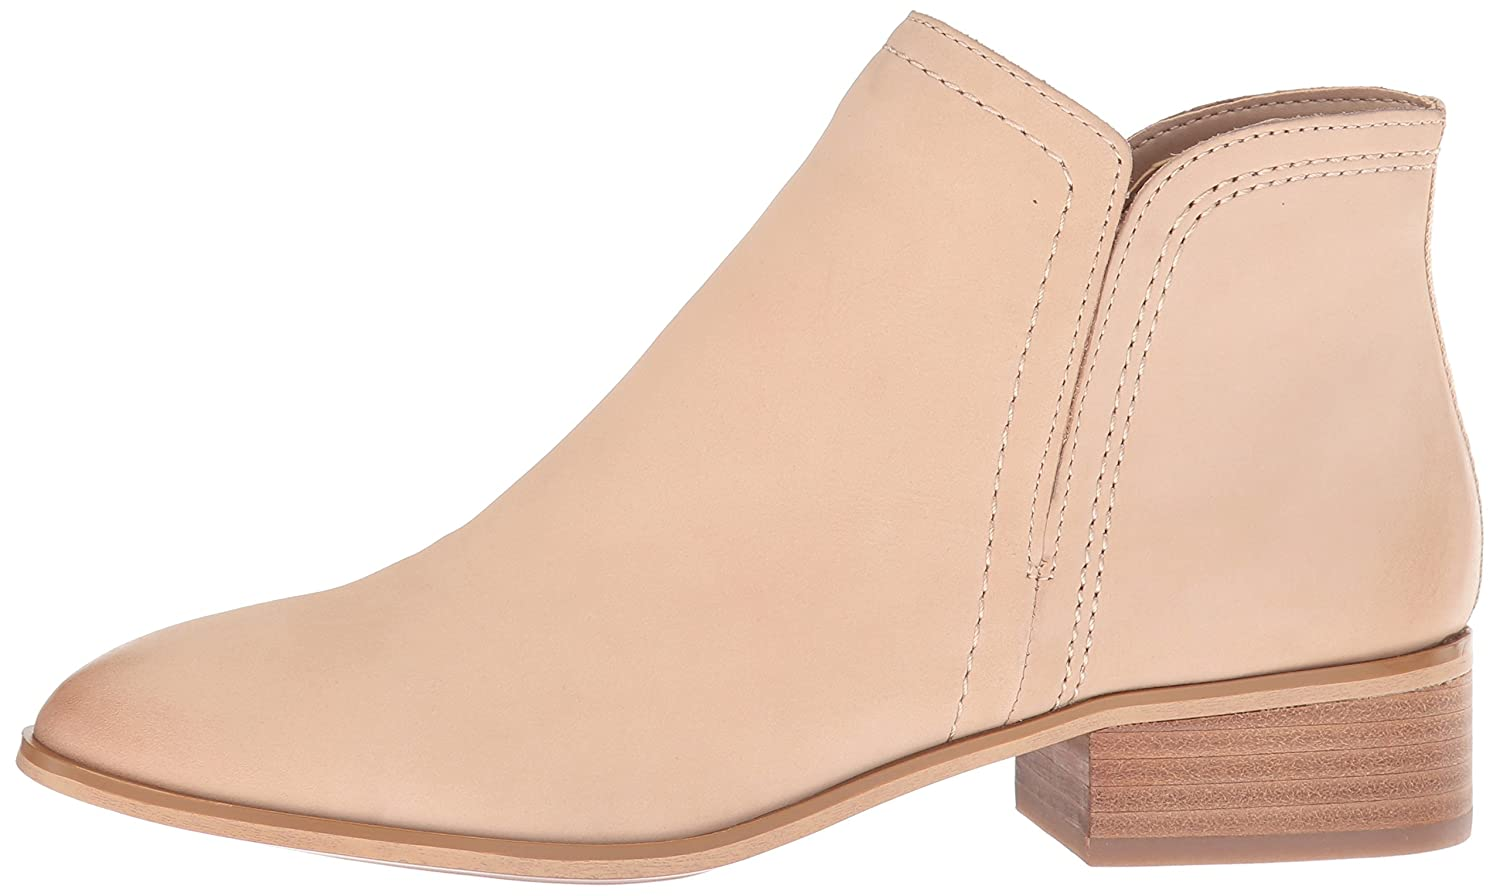 ALDO Women's Gweria Ankle US|Bone Boot B076DJ23W3 5 B(M) US|Bone Ankle 9cc585